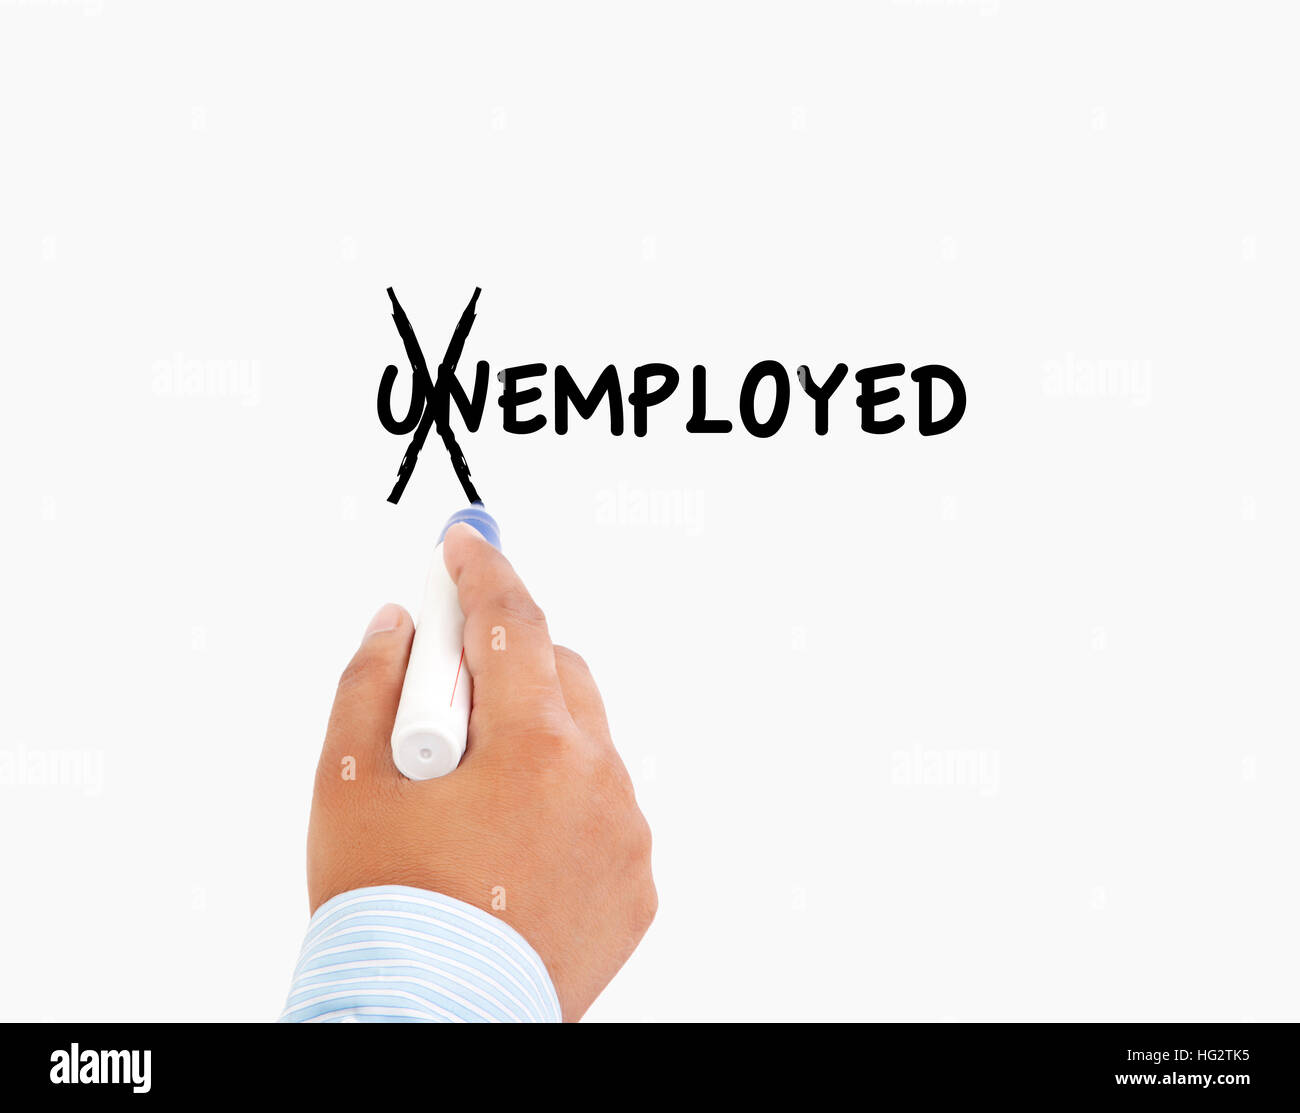 Turning the word Unemployed into Employed, business concept - Stock Image